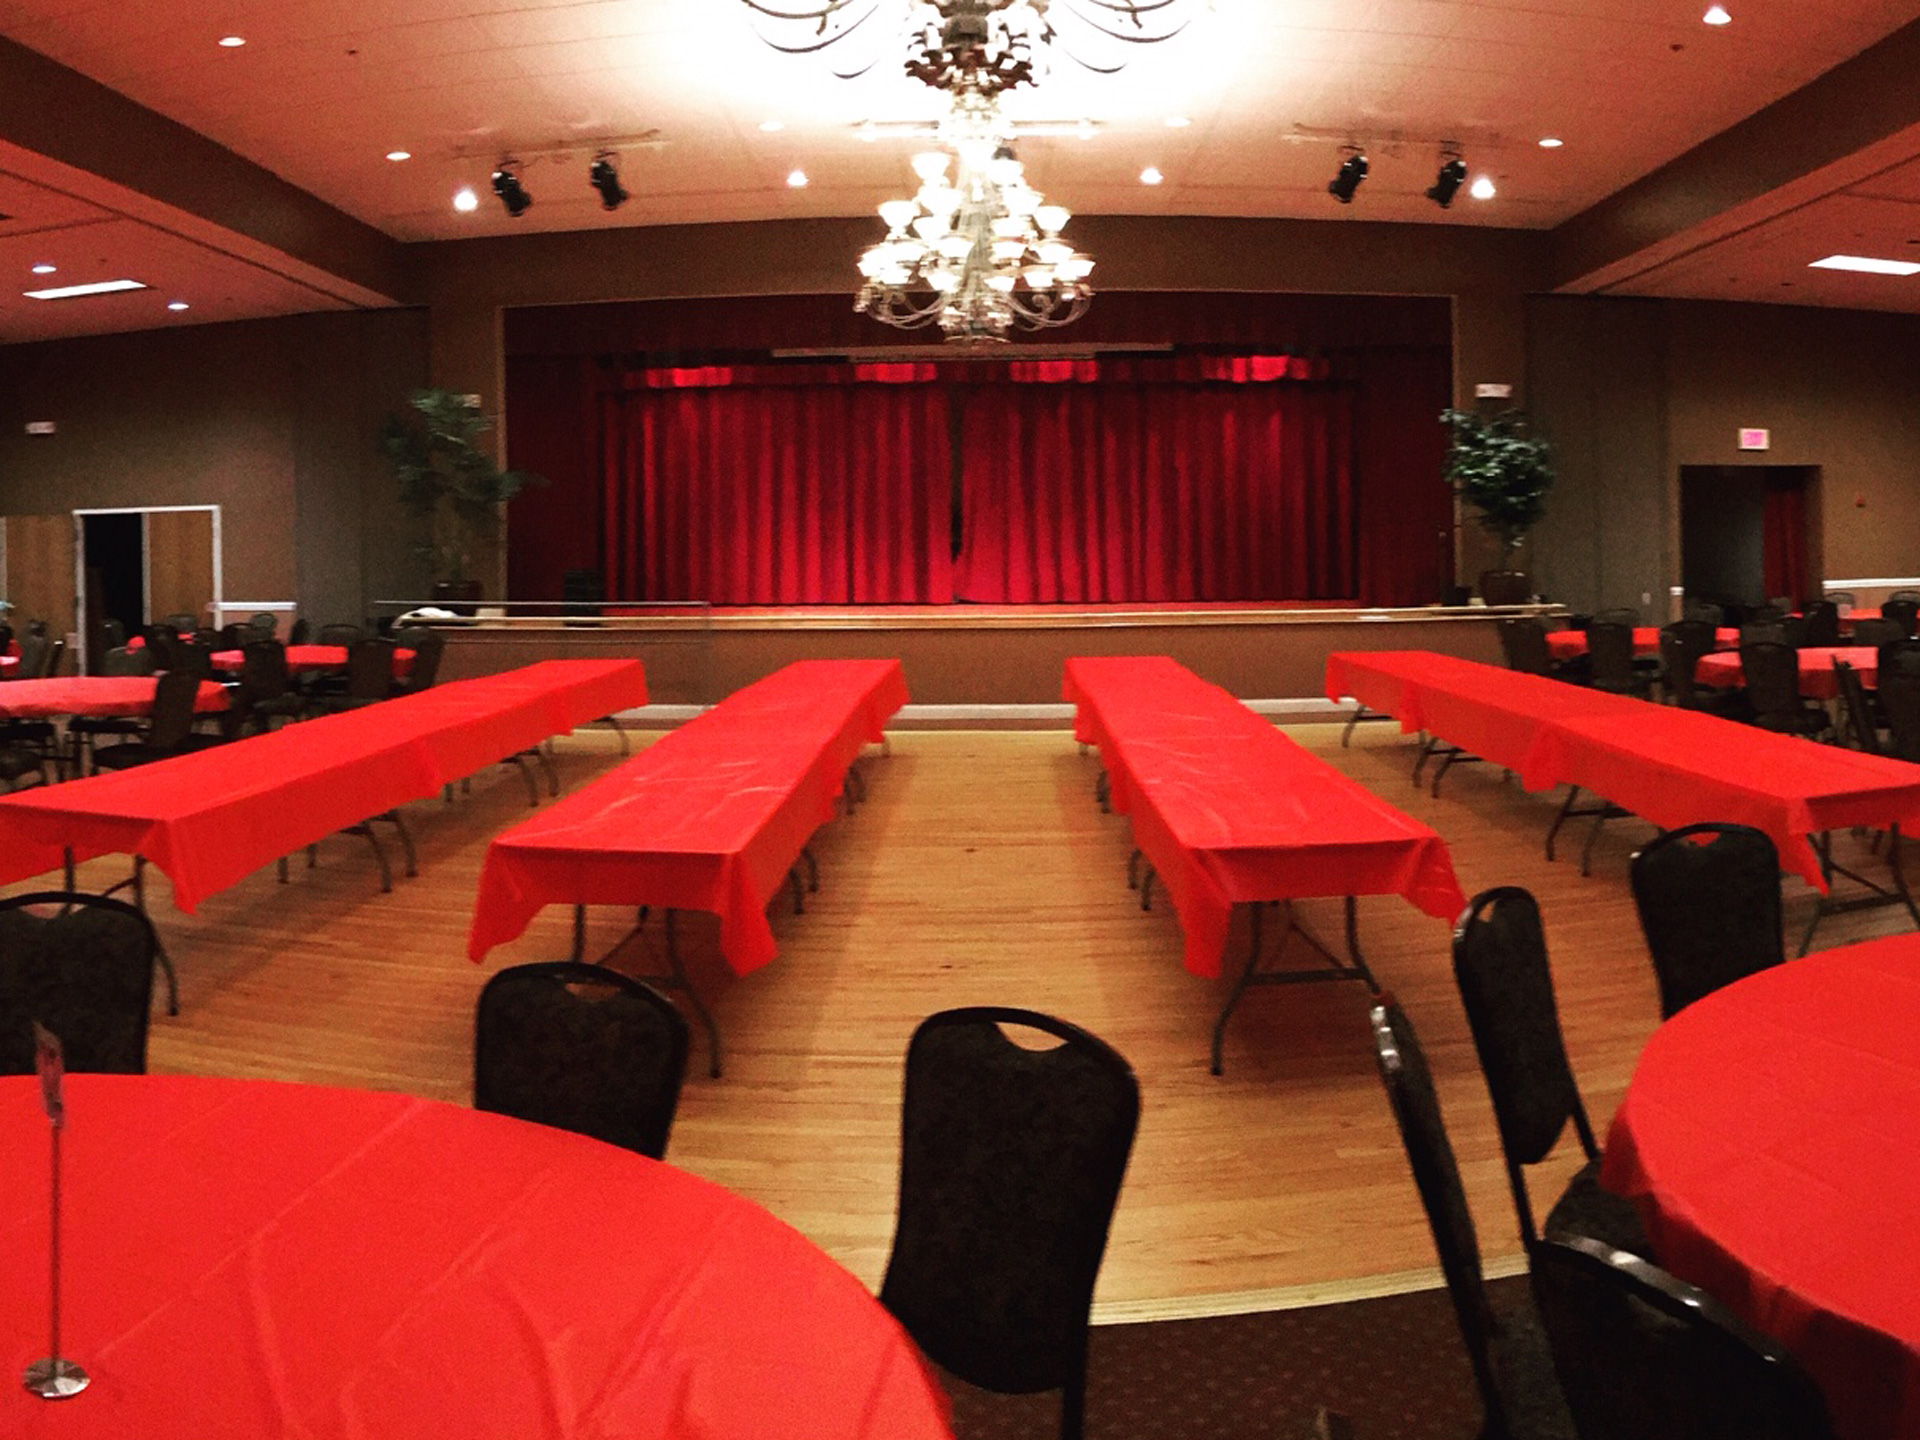 Ukrainian American Cultural Center - Main Ballroom